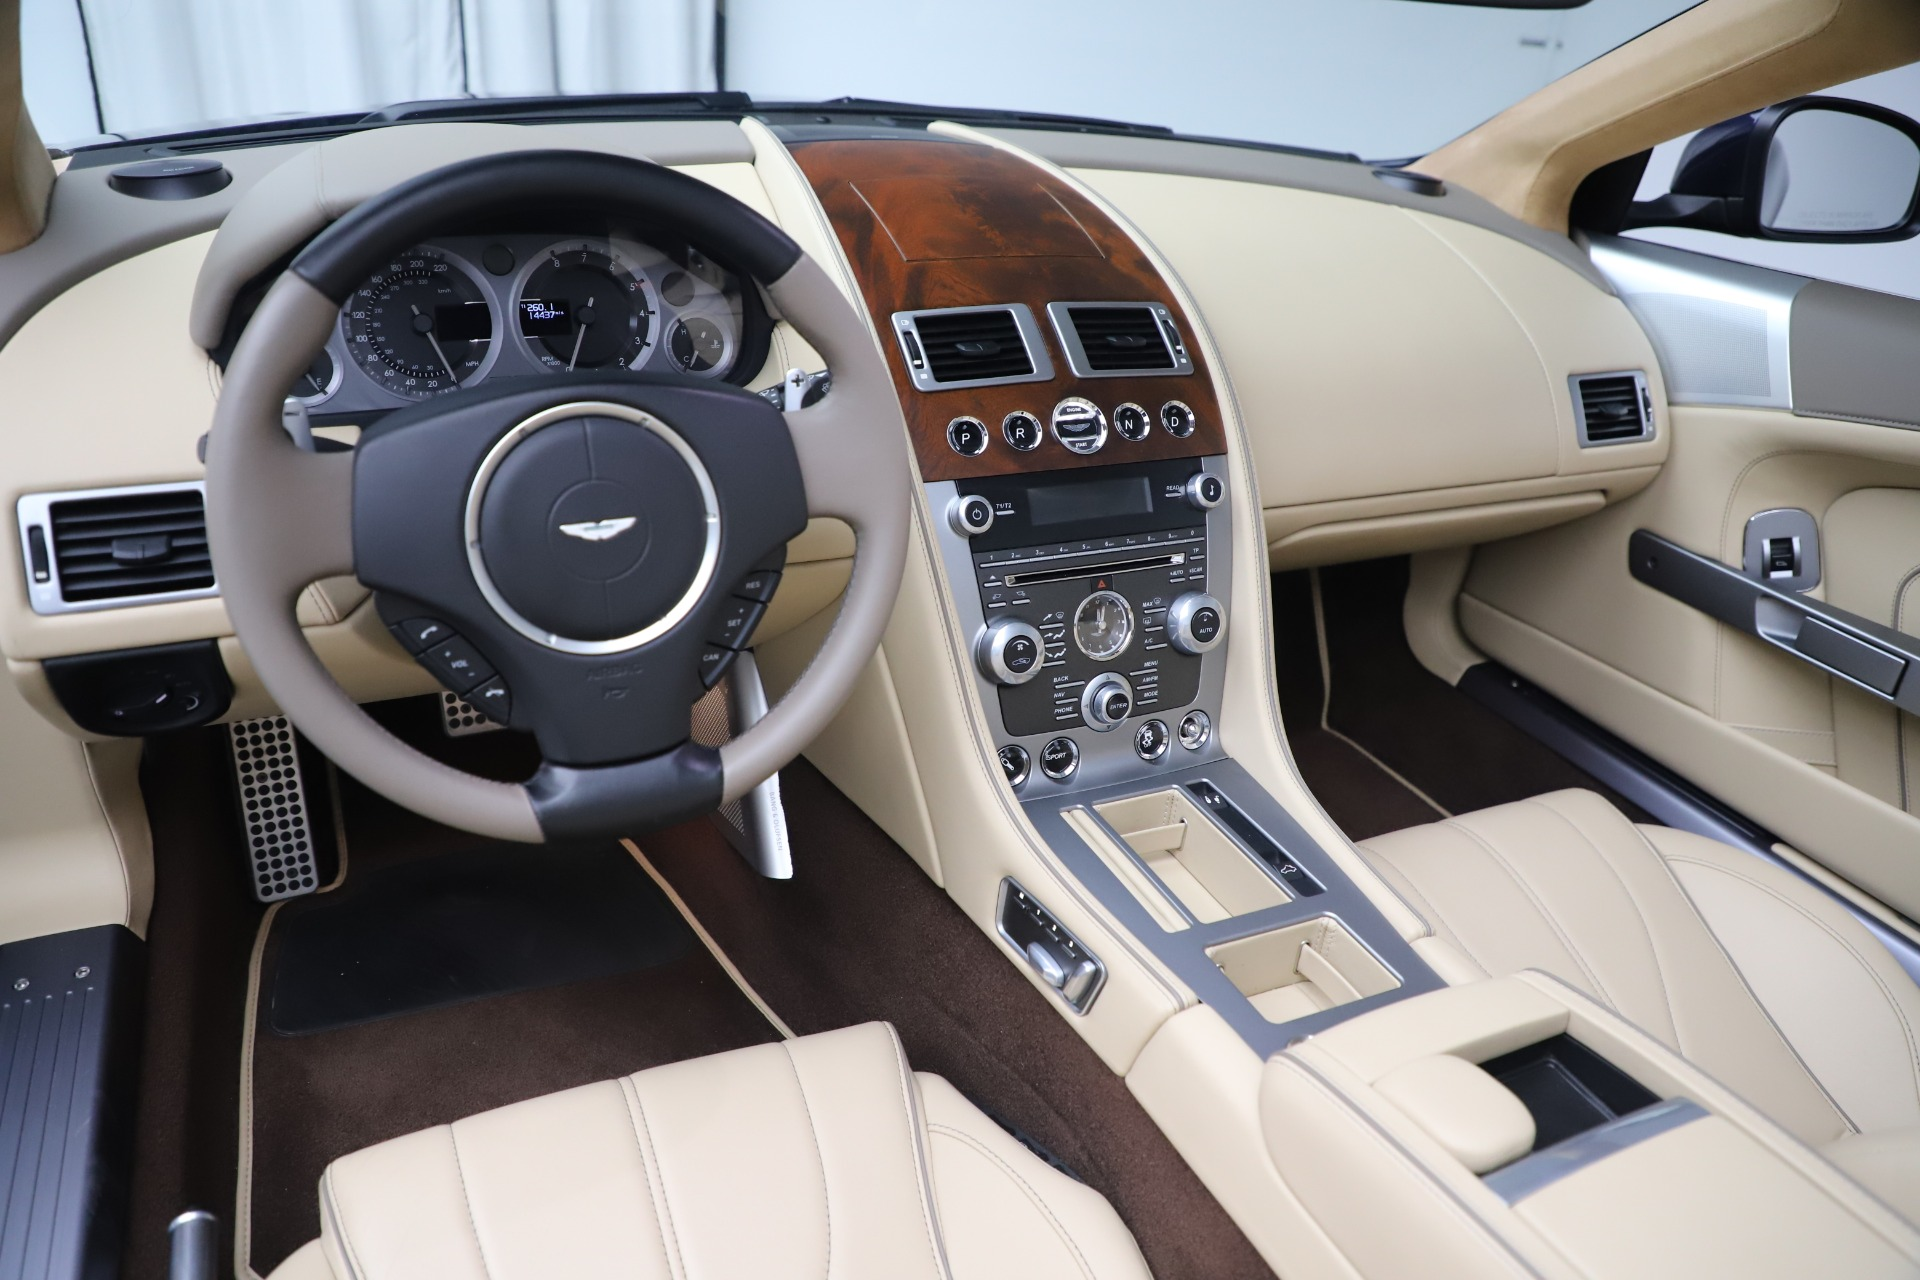 Used 2014 Aston Martin DB9 Volante For Sale In Westport, CT 3591_p19